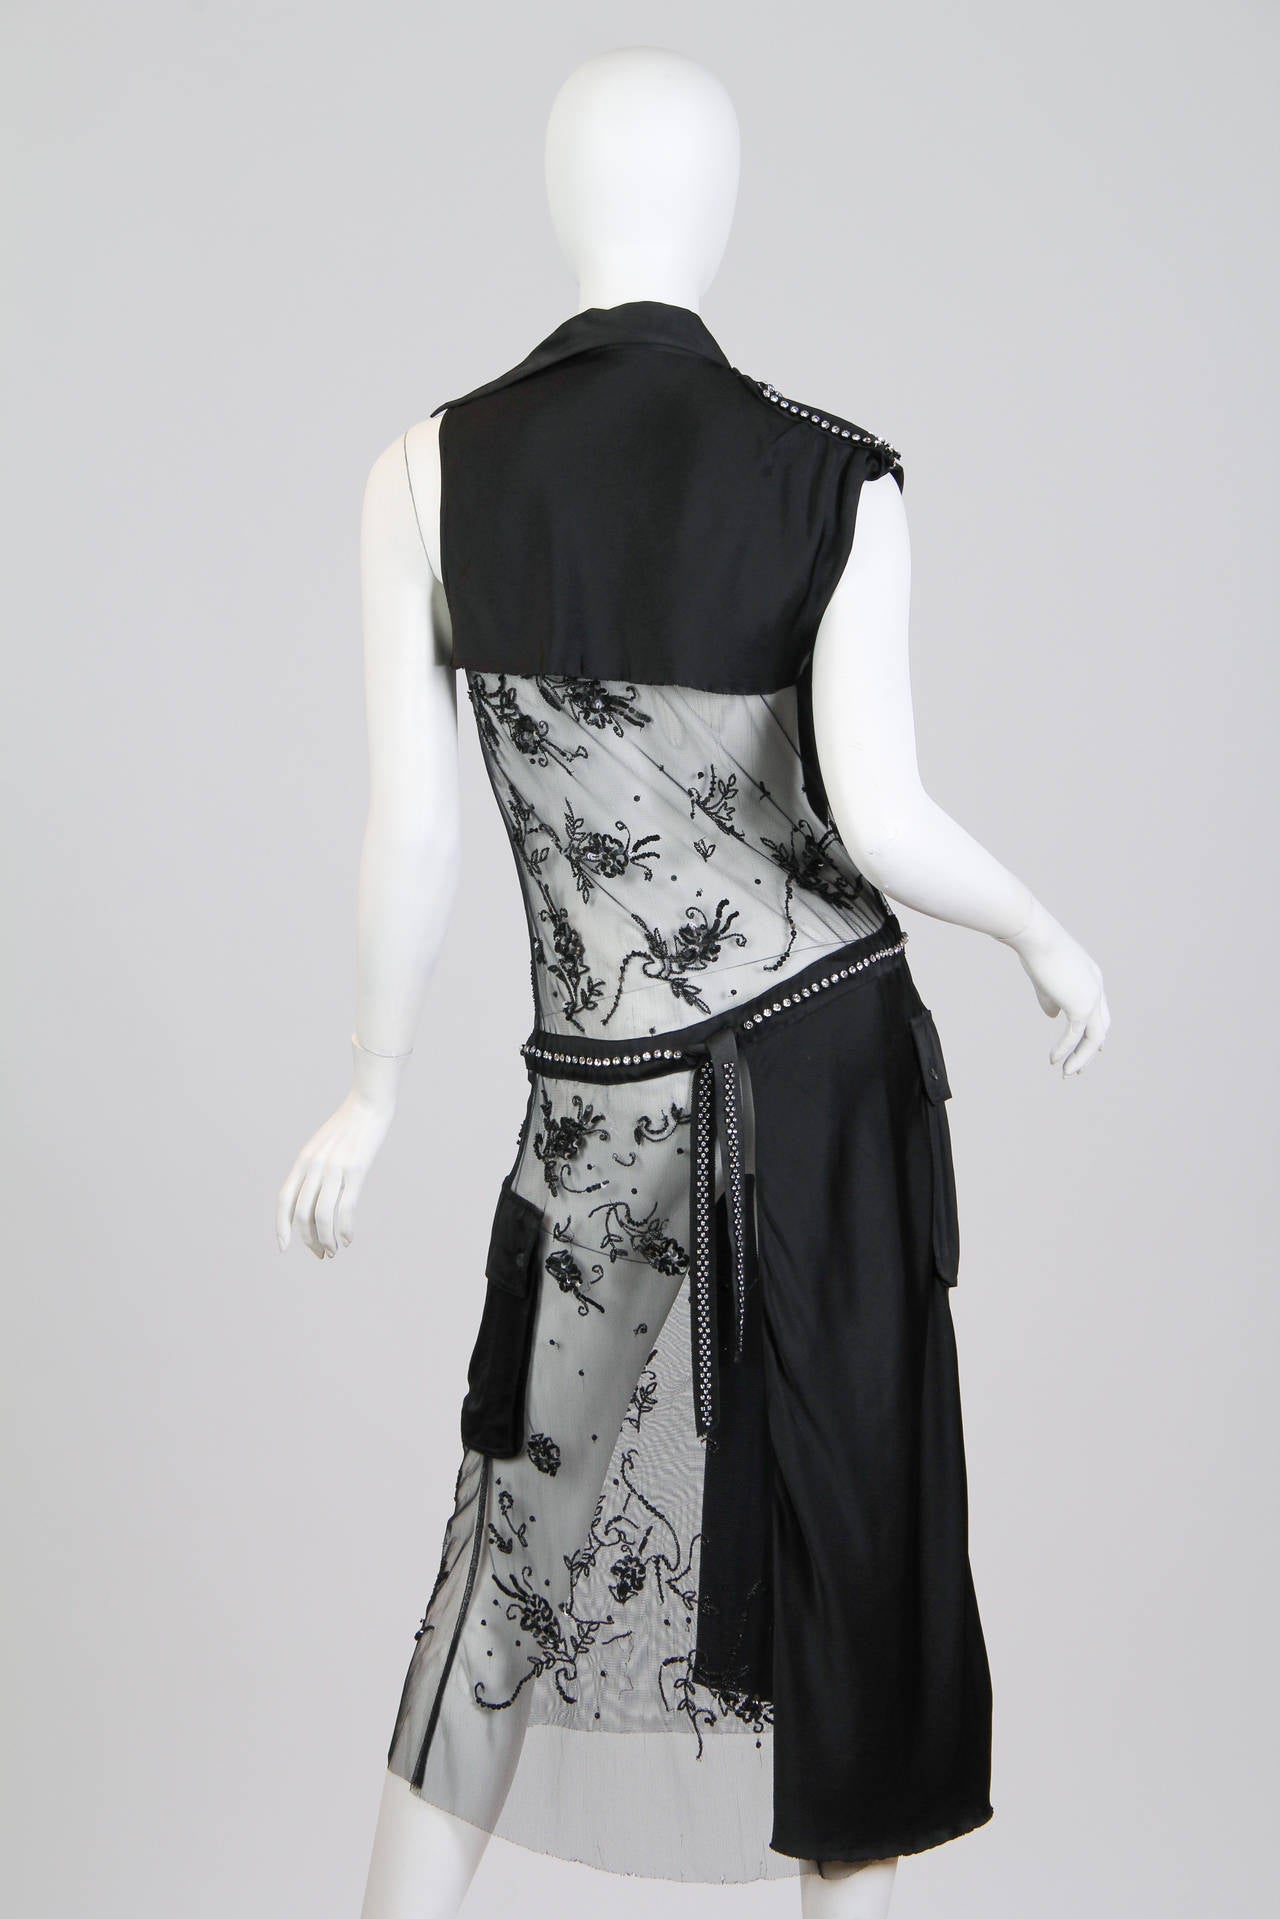 Deconstructed Moschino Asymmetrical Beaded Dress In Good Condition For Sale In New York, NY